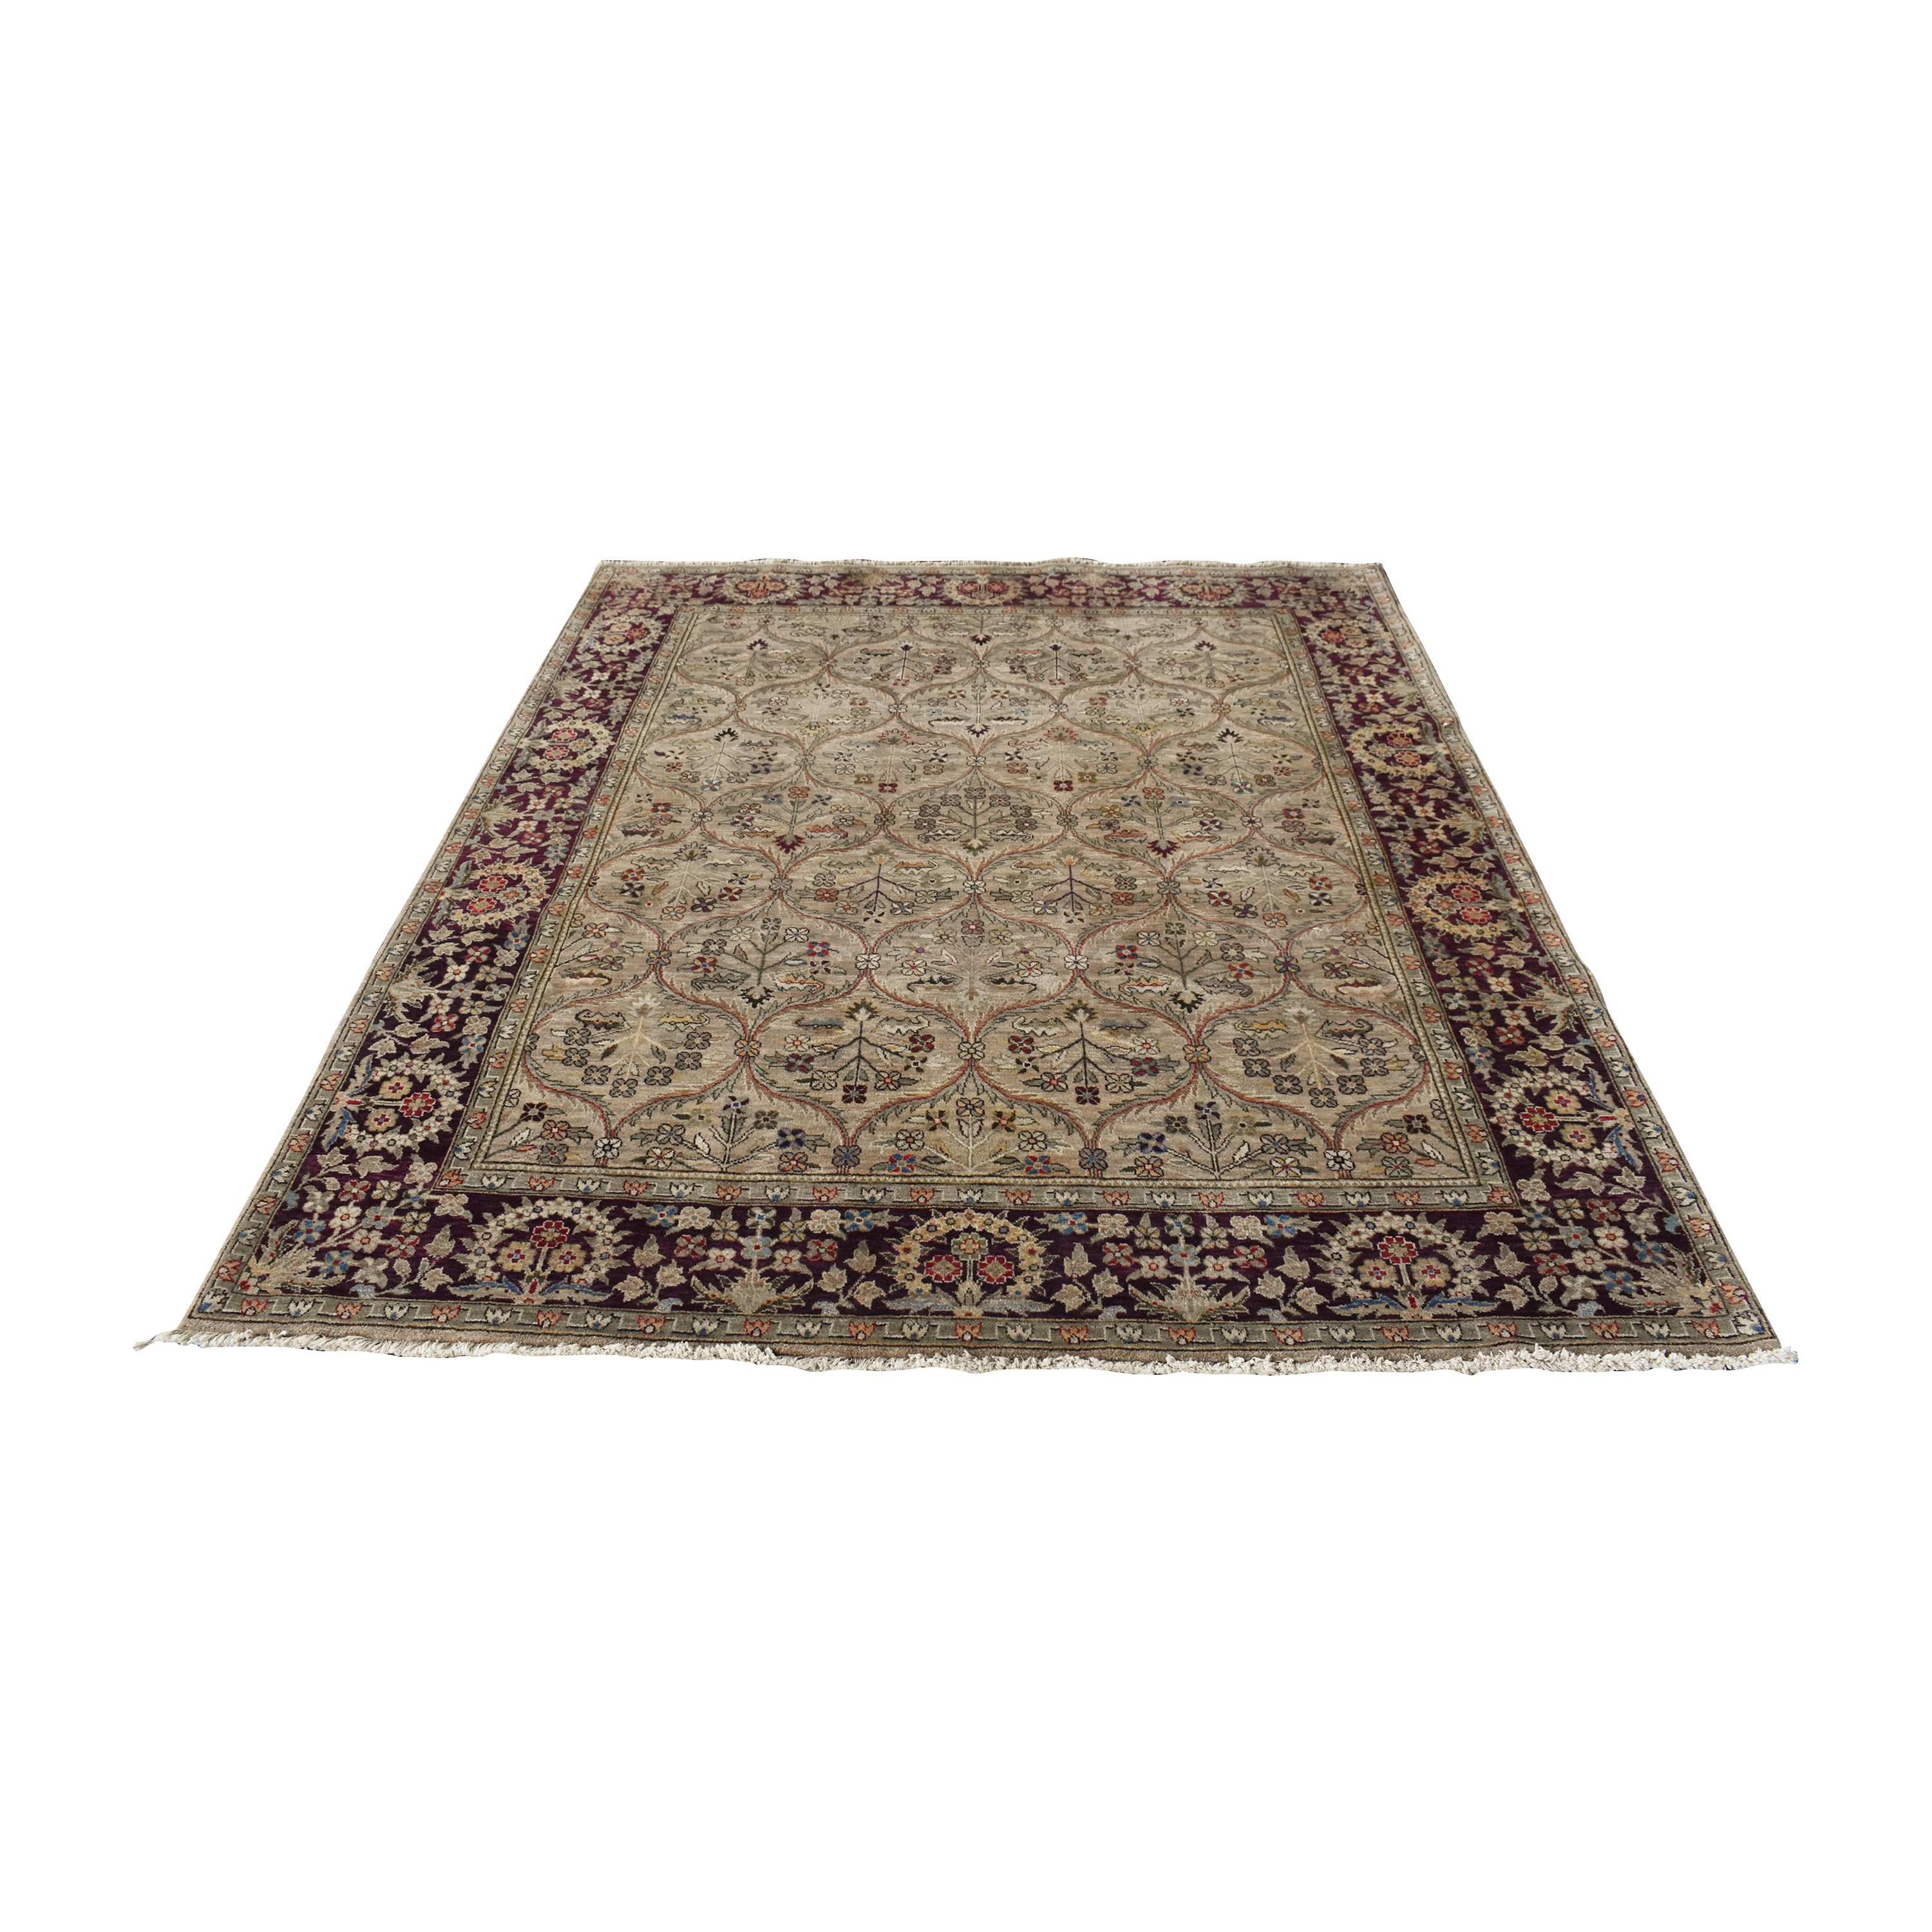 Bordered Style Area Rug ct